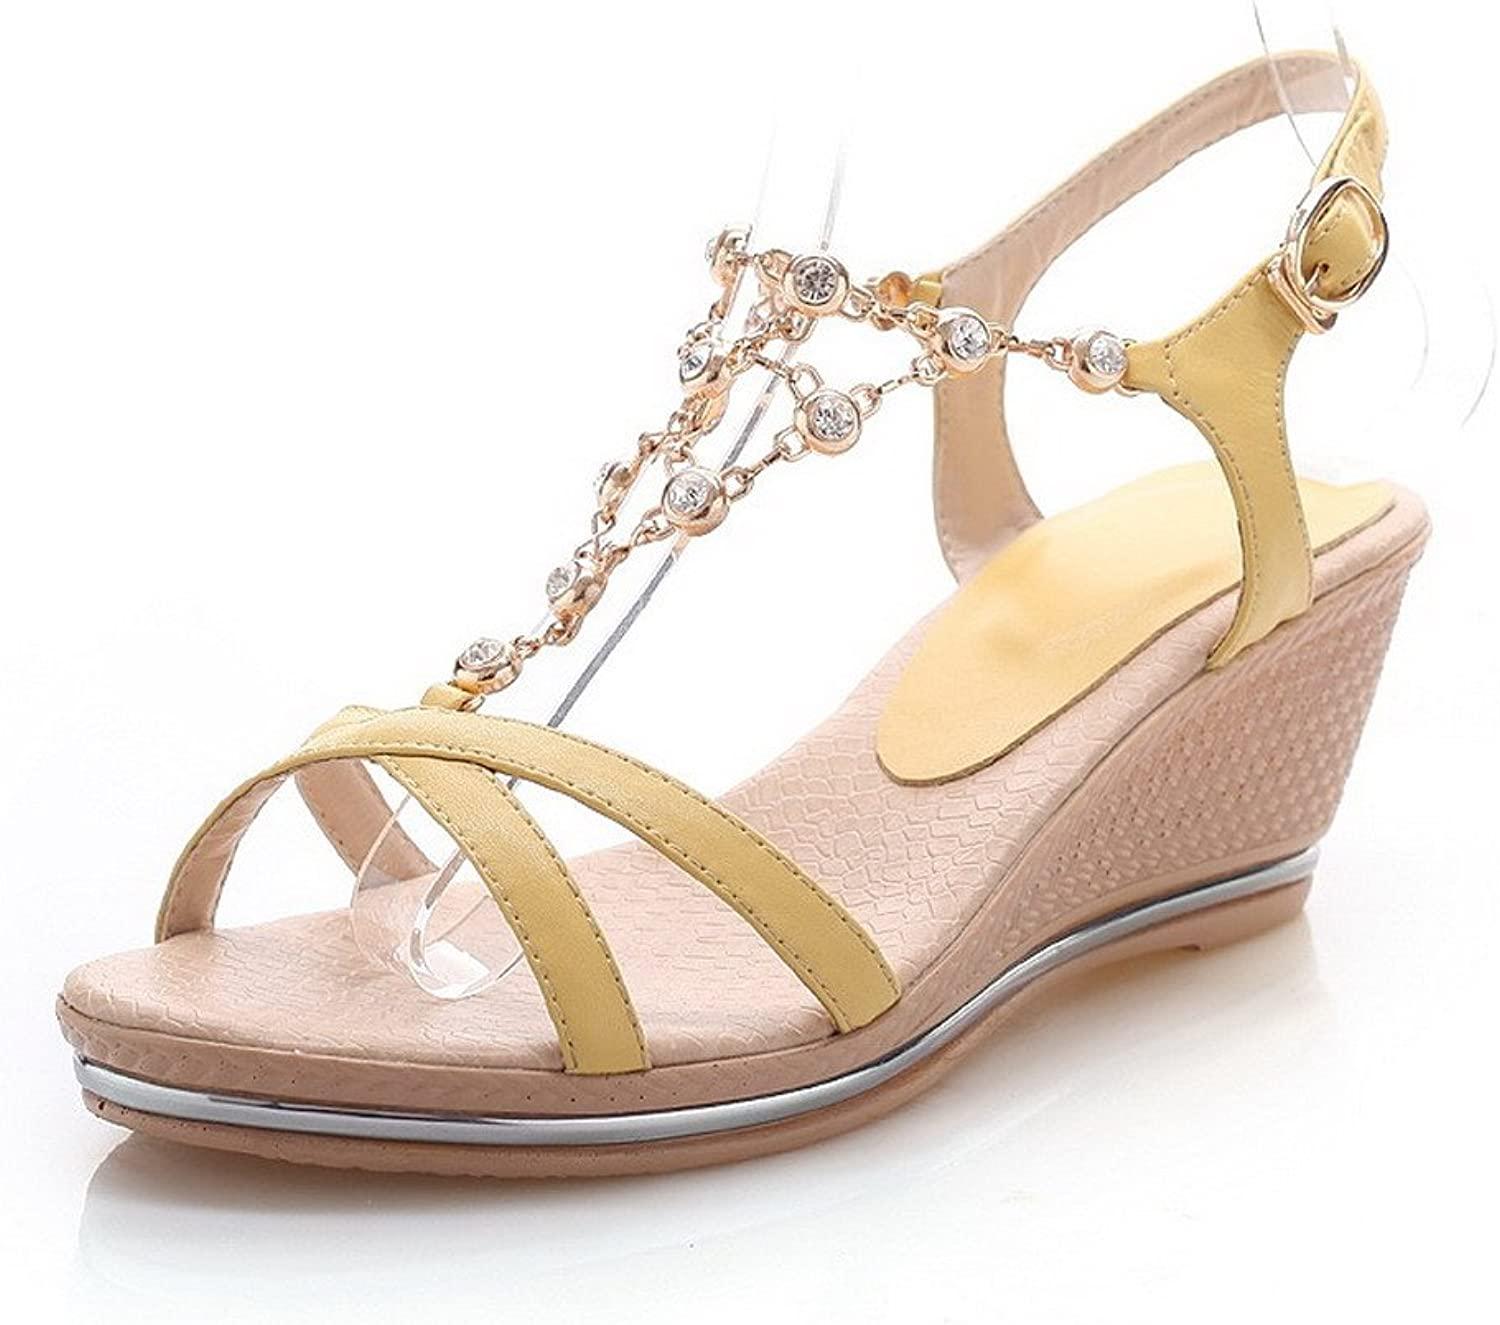 AmoonyFashion Women's Open Toe Kitten Heels Soft Material Solid Buckle Sandals